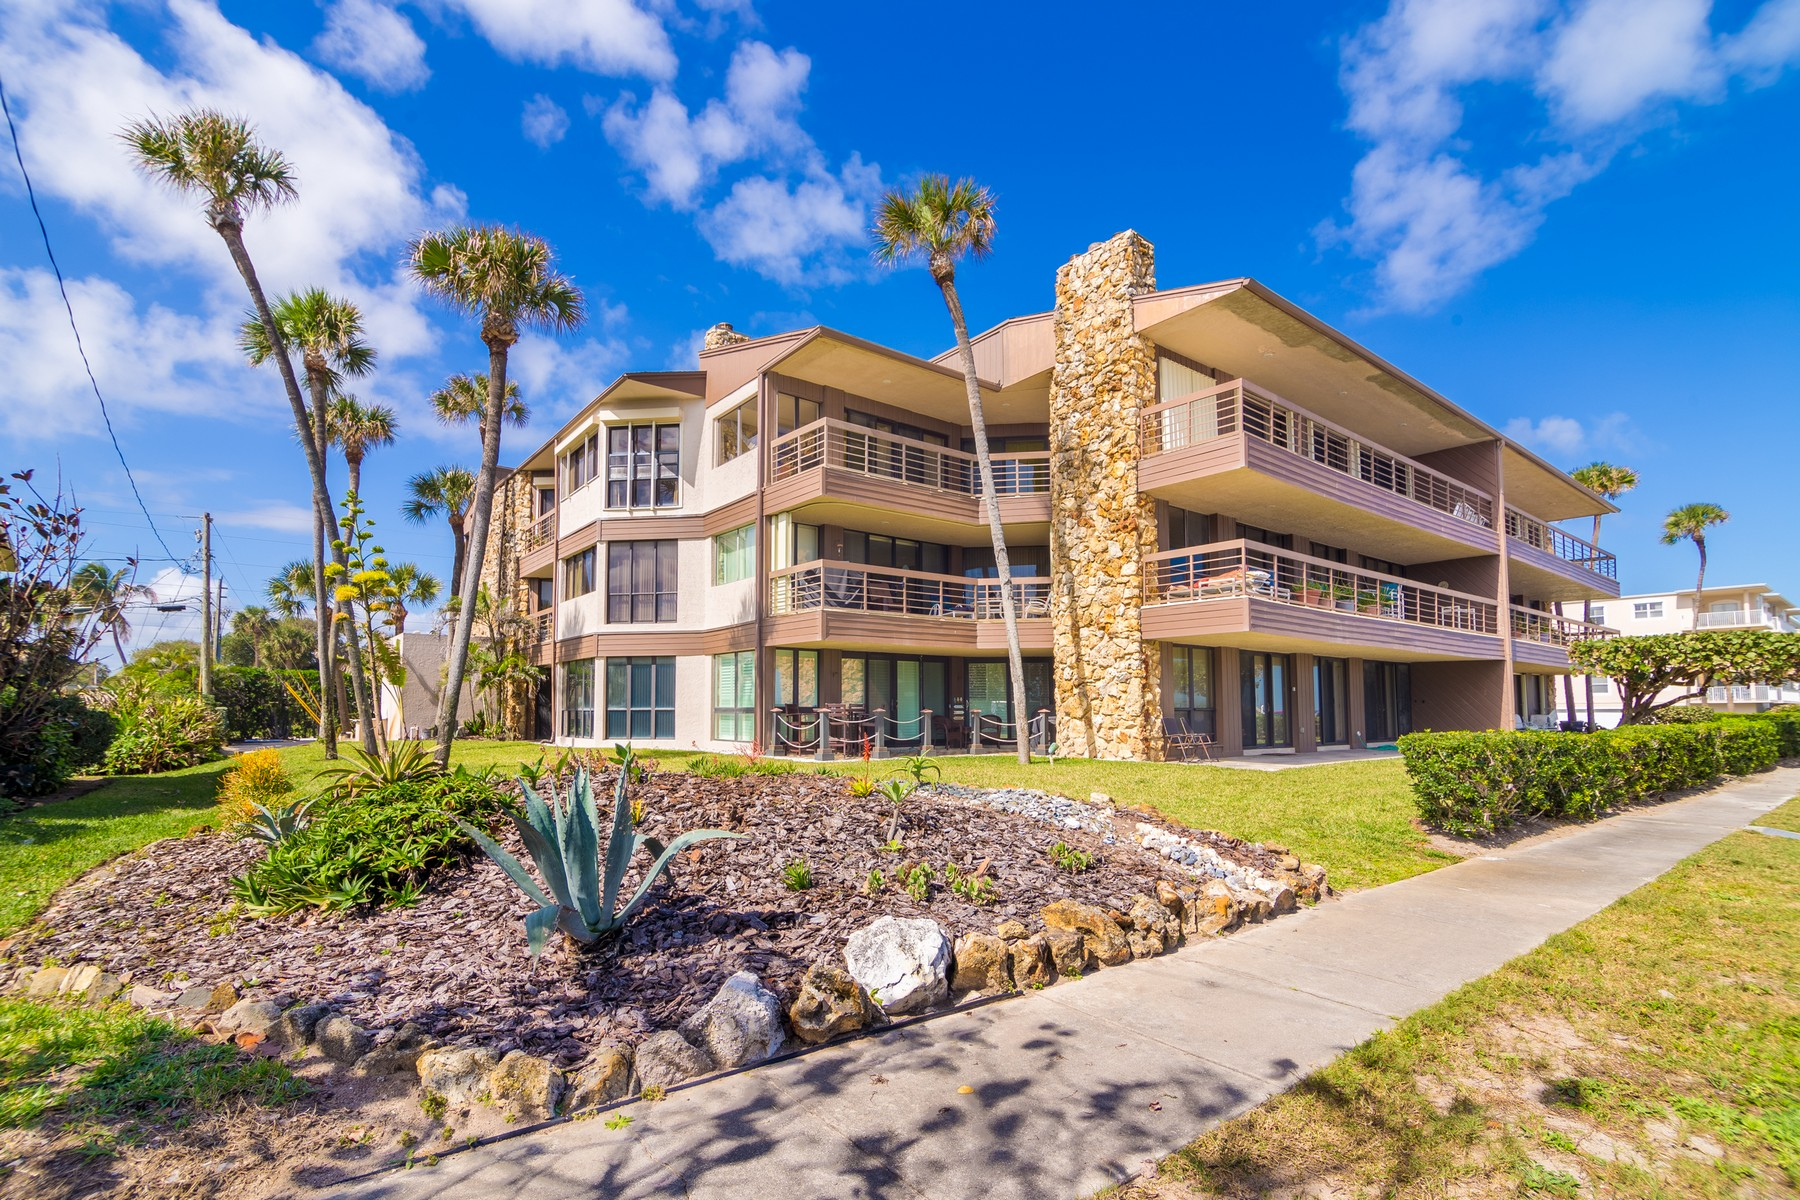 Condominium for Sale at Islamorada Condo 700 Wavecrest Avenue #306 Indialantic, Florida 32903 United States